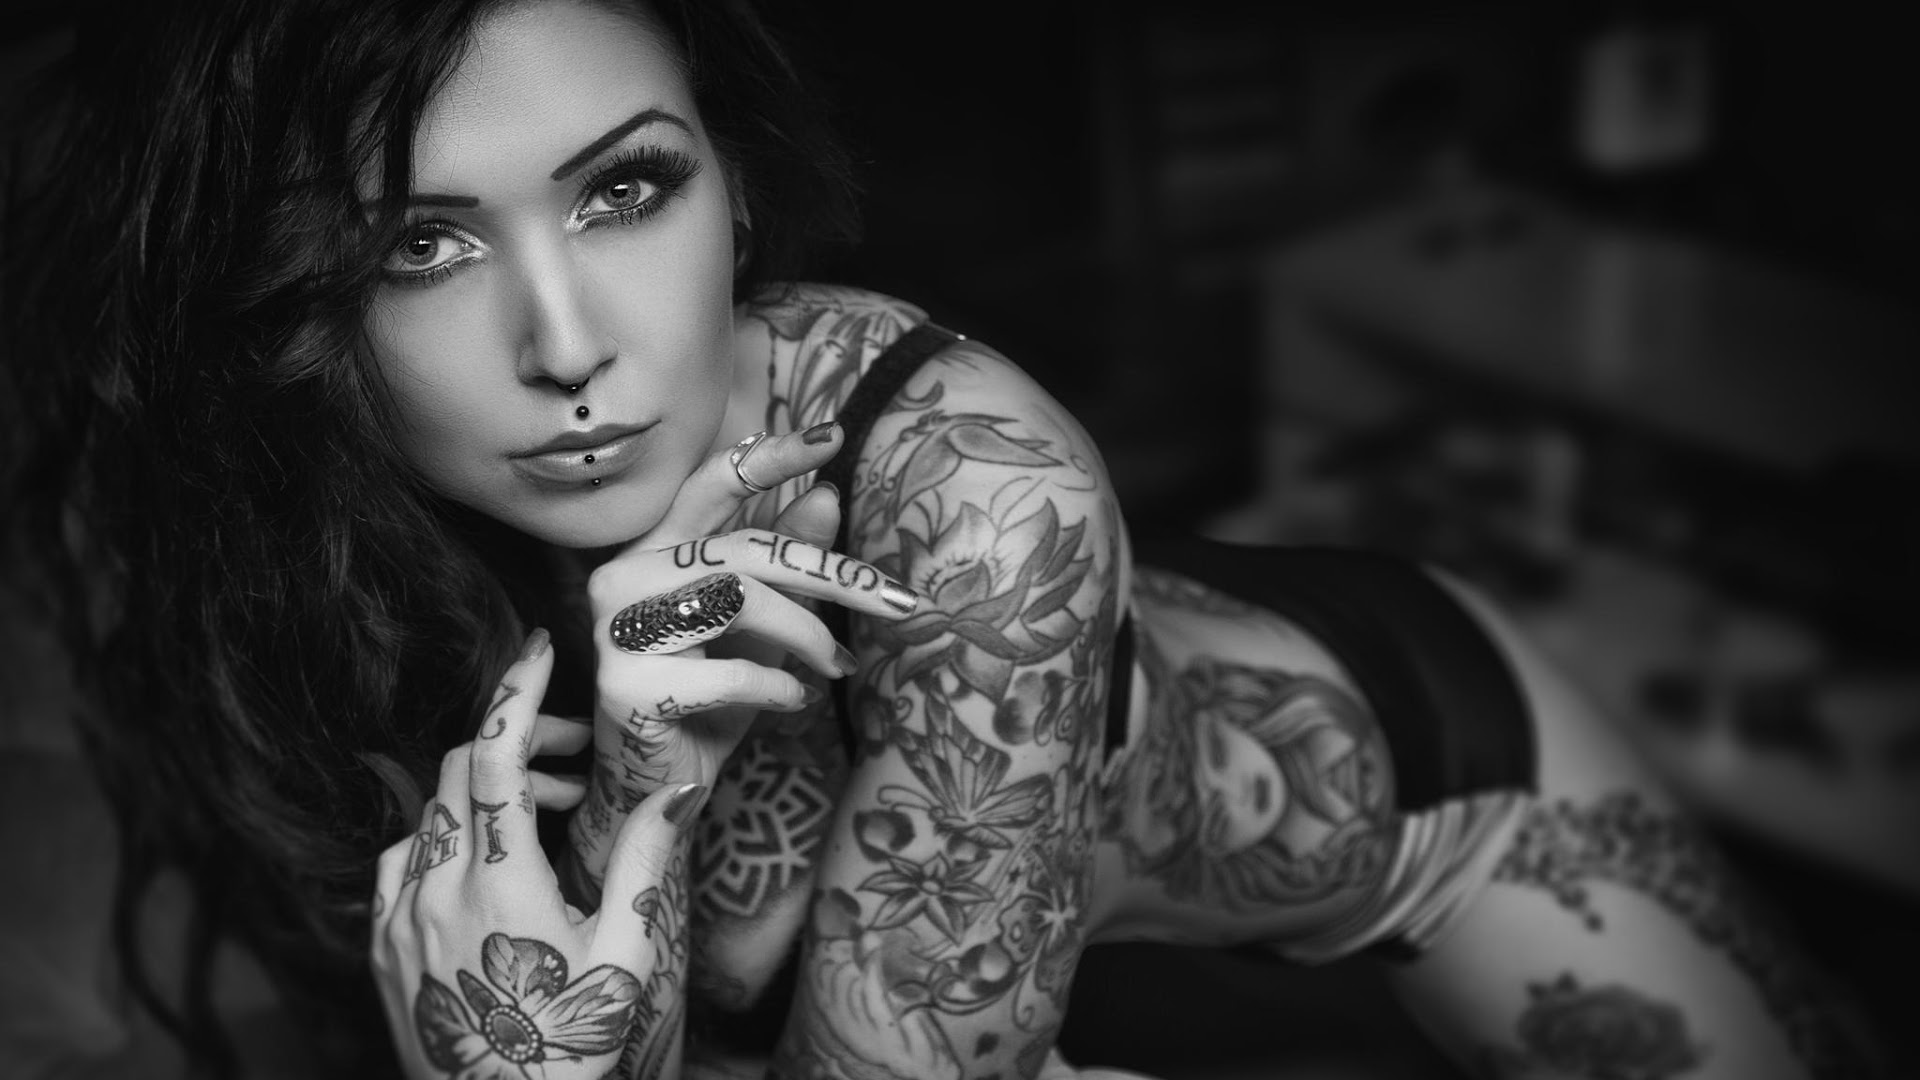 tattooed girls wallpapers - sf wallpaper